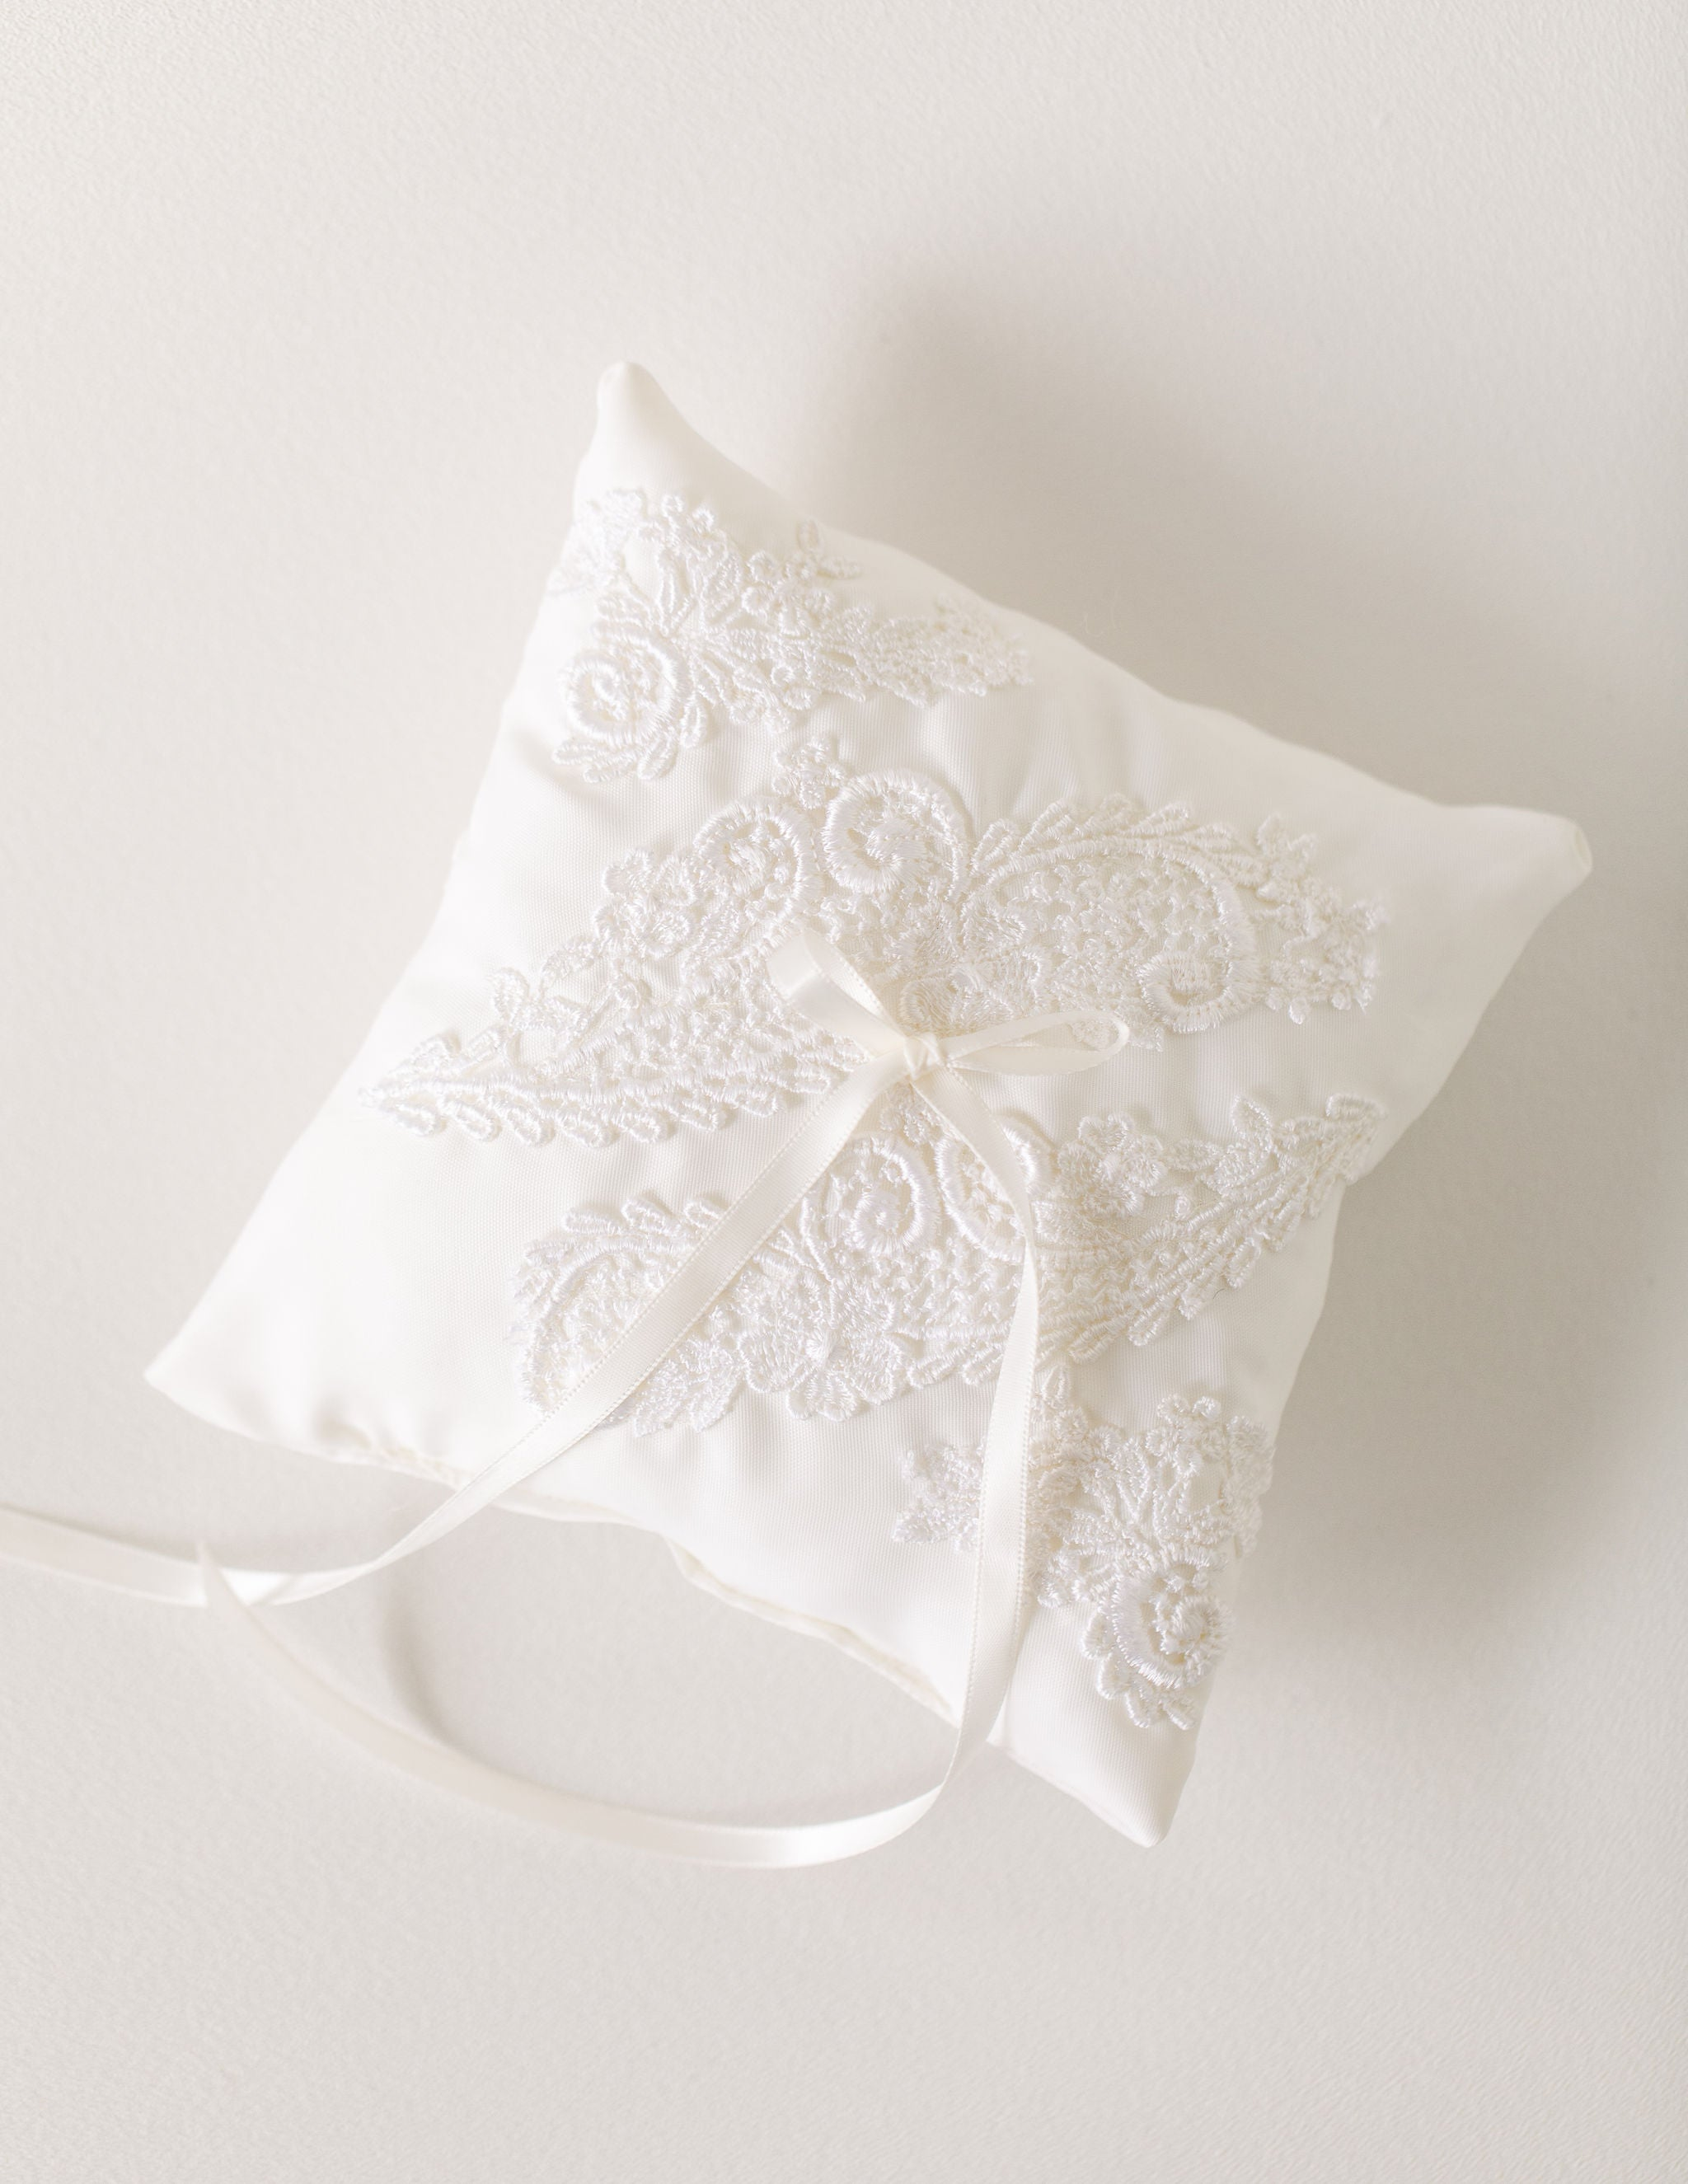 wedding garter and ring pillow made from the bride's mom's wedding dress sleeves by The Garter Girl